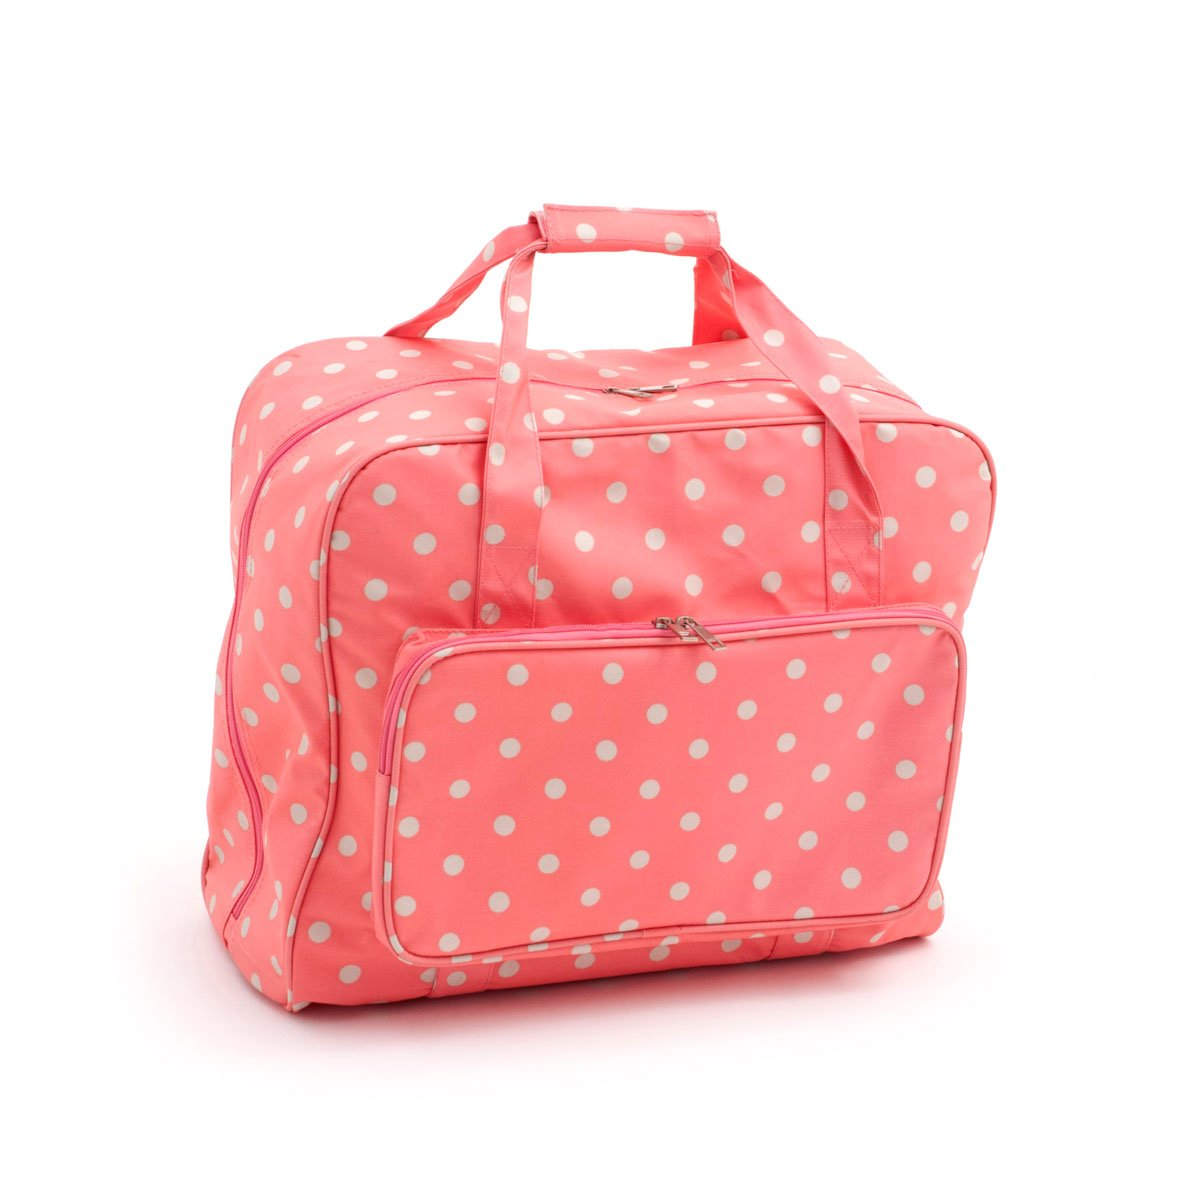 Hobby Gift MR4660\262 PVC Oil Cloth, Sewing Machine Carry Bag Case Pink Coral Spots, for Singer, Janome, Brother, Toyota HobbyGift